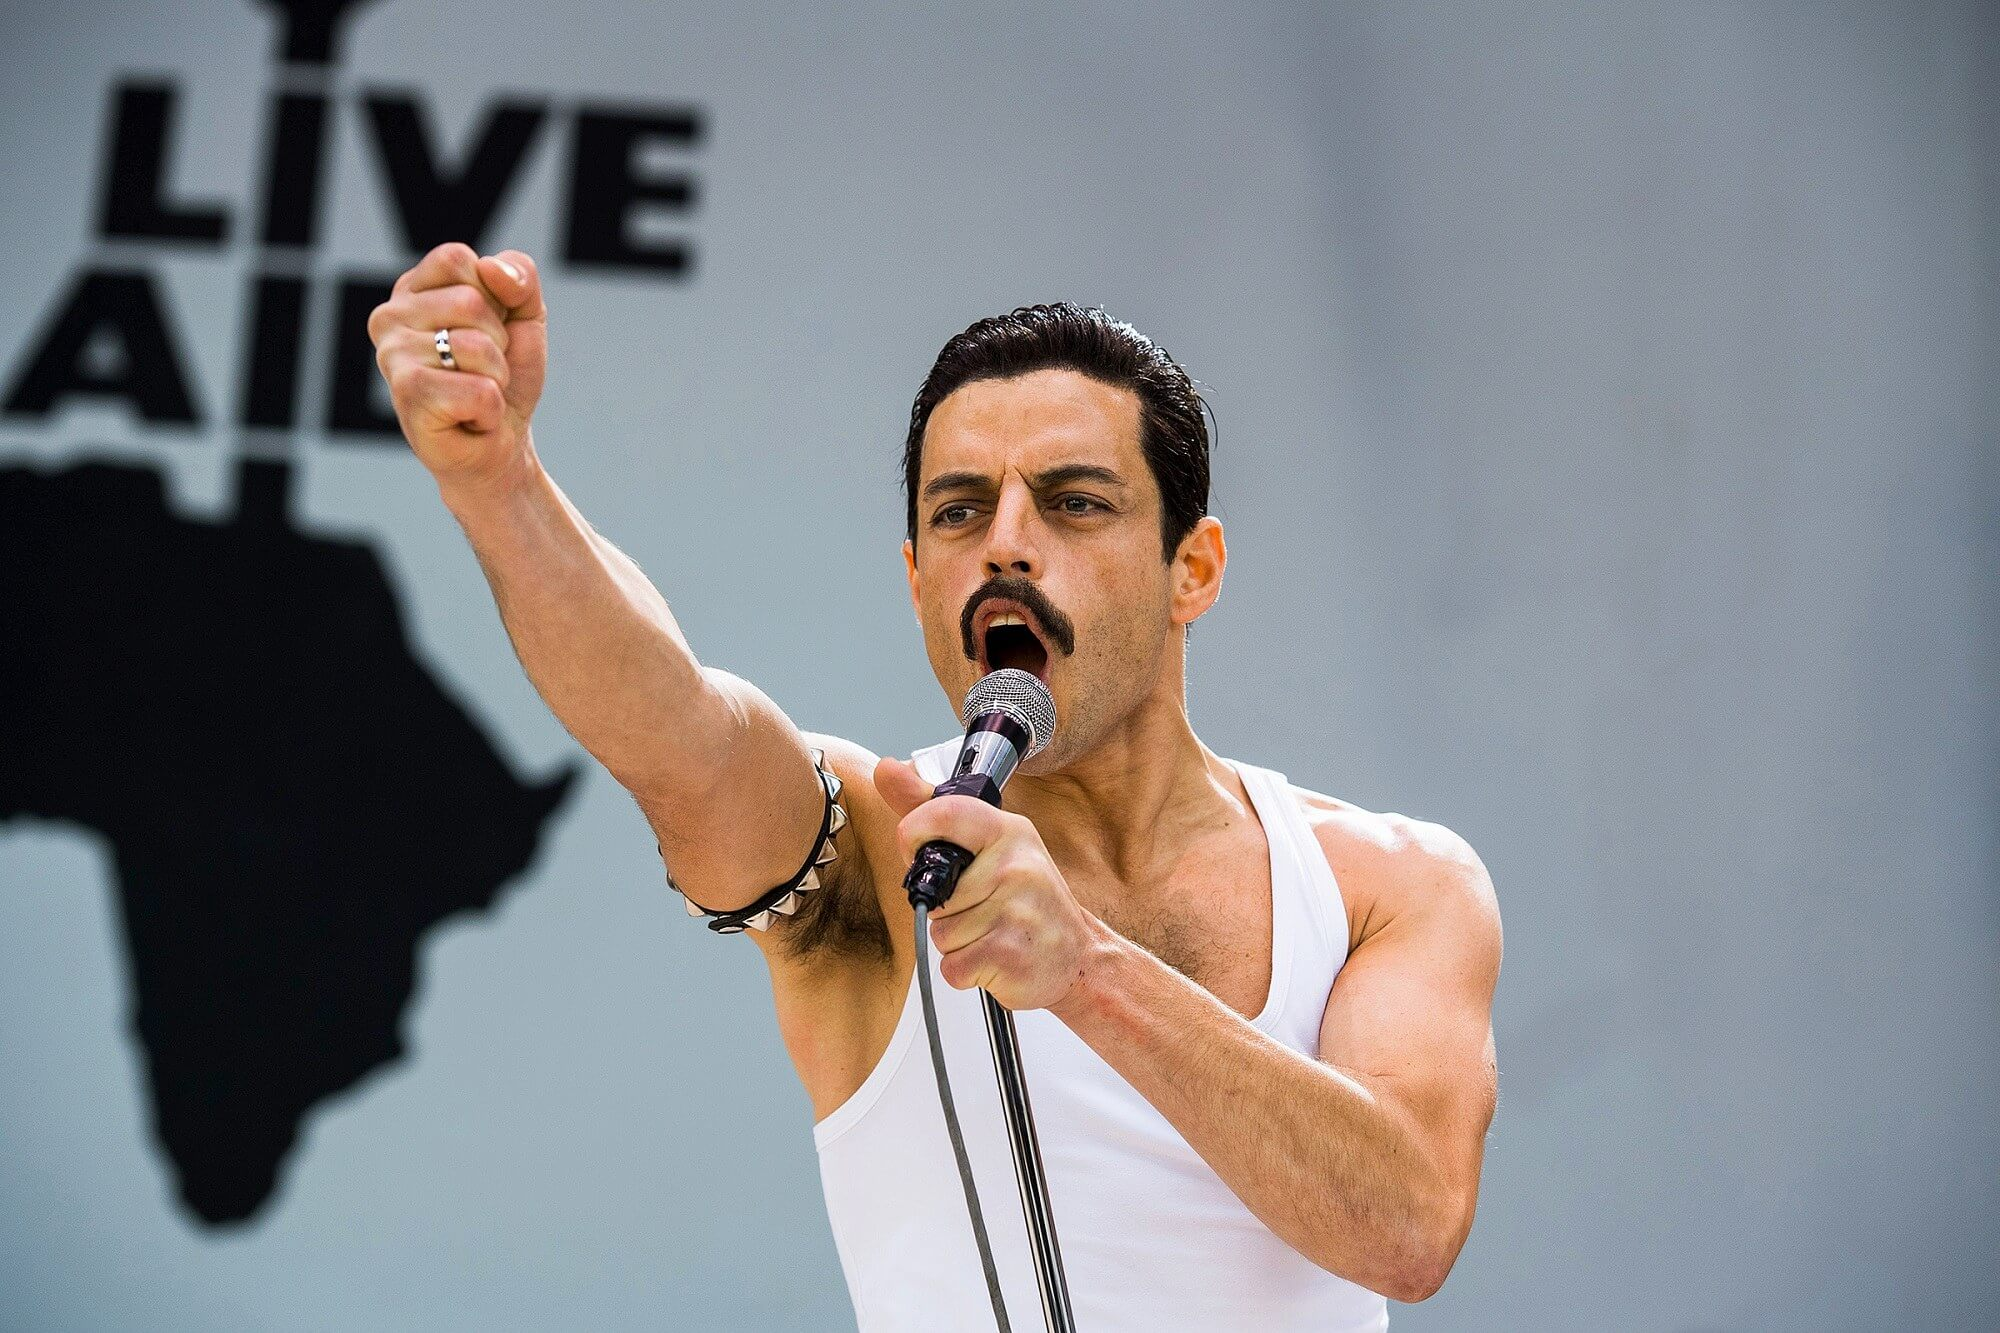 'Bohemian Rhapsody' Blu-ray detailed